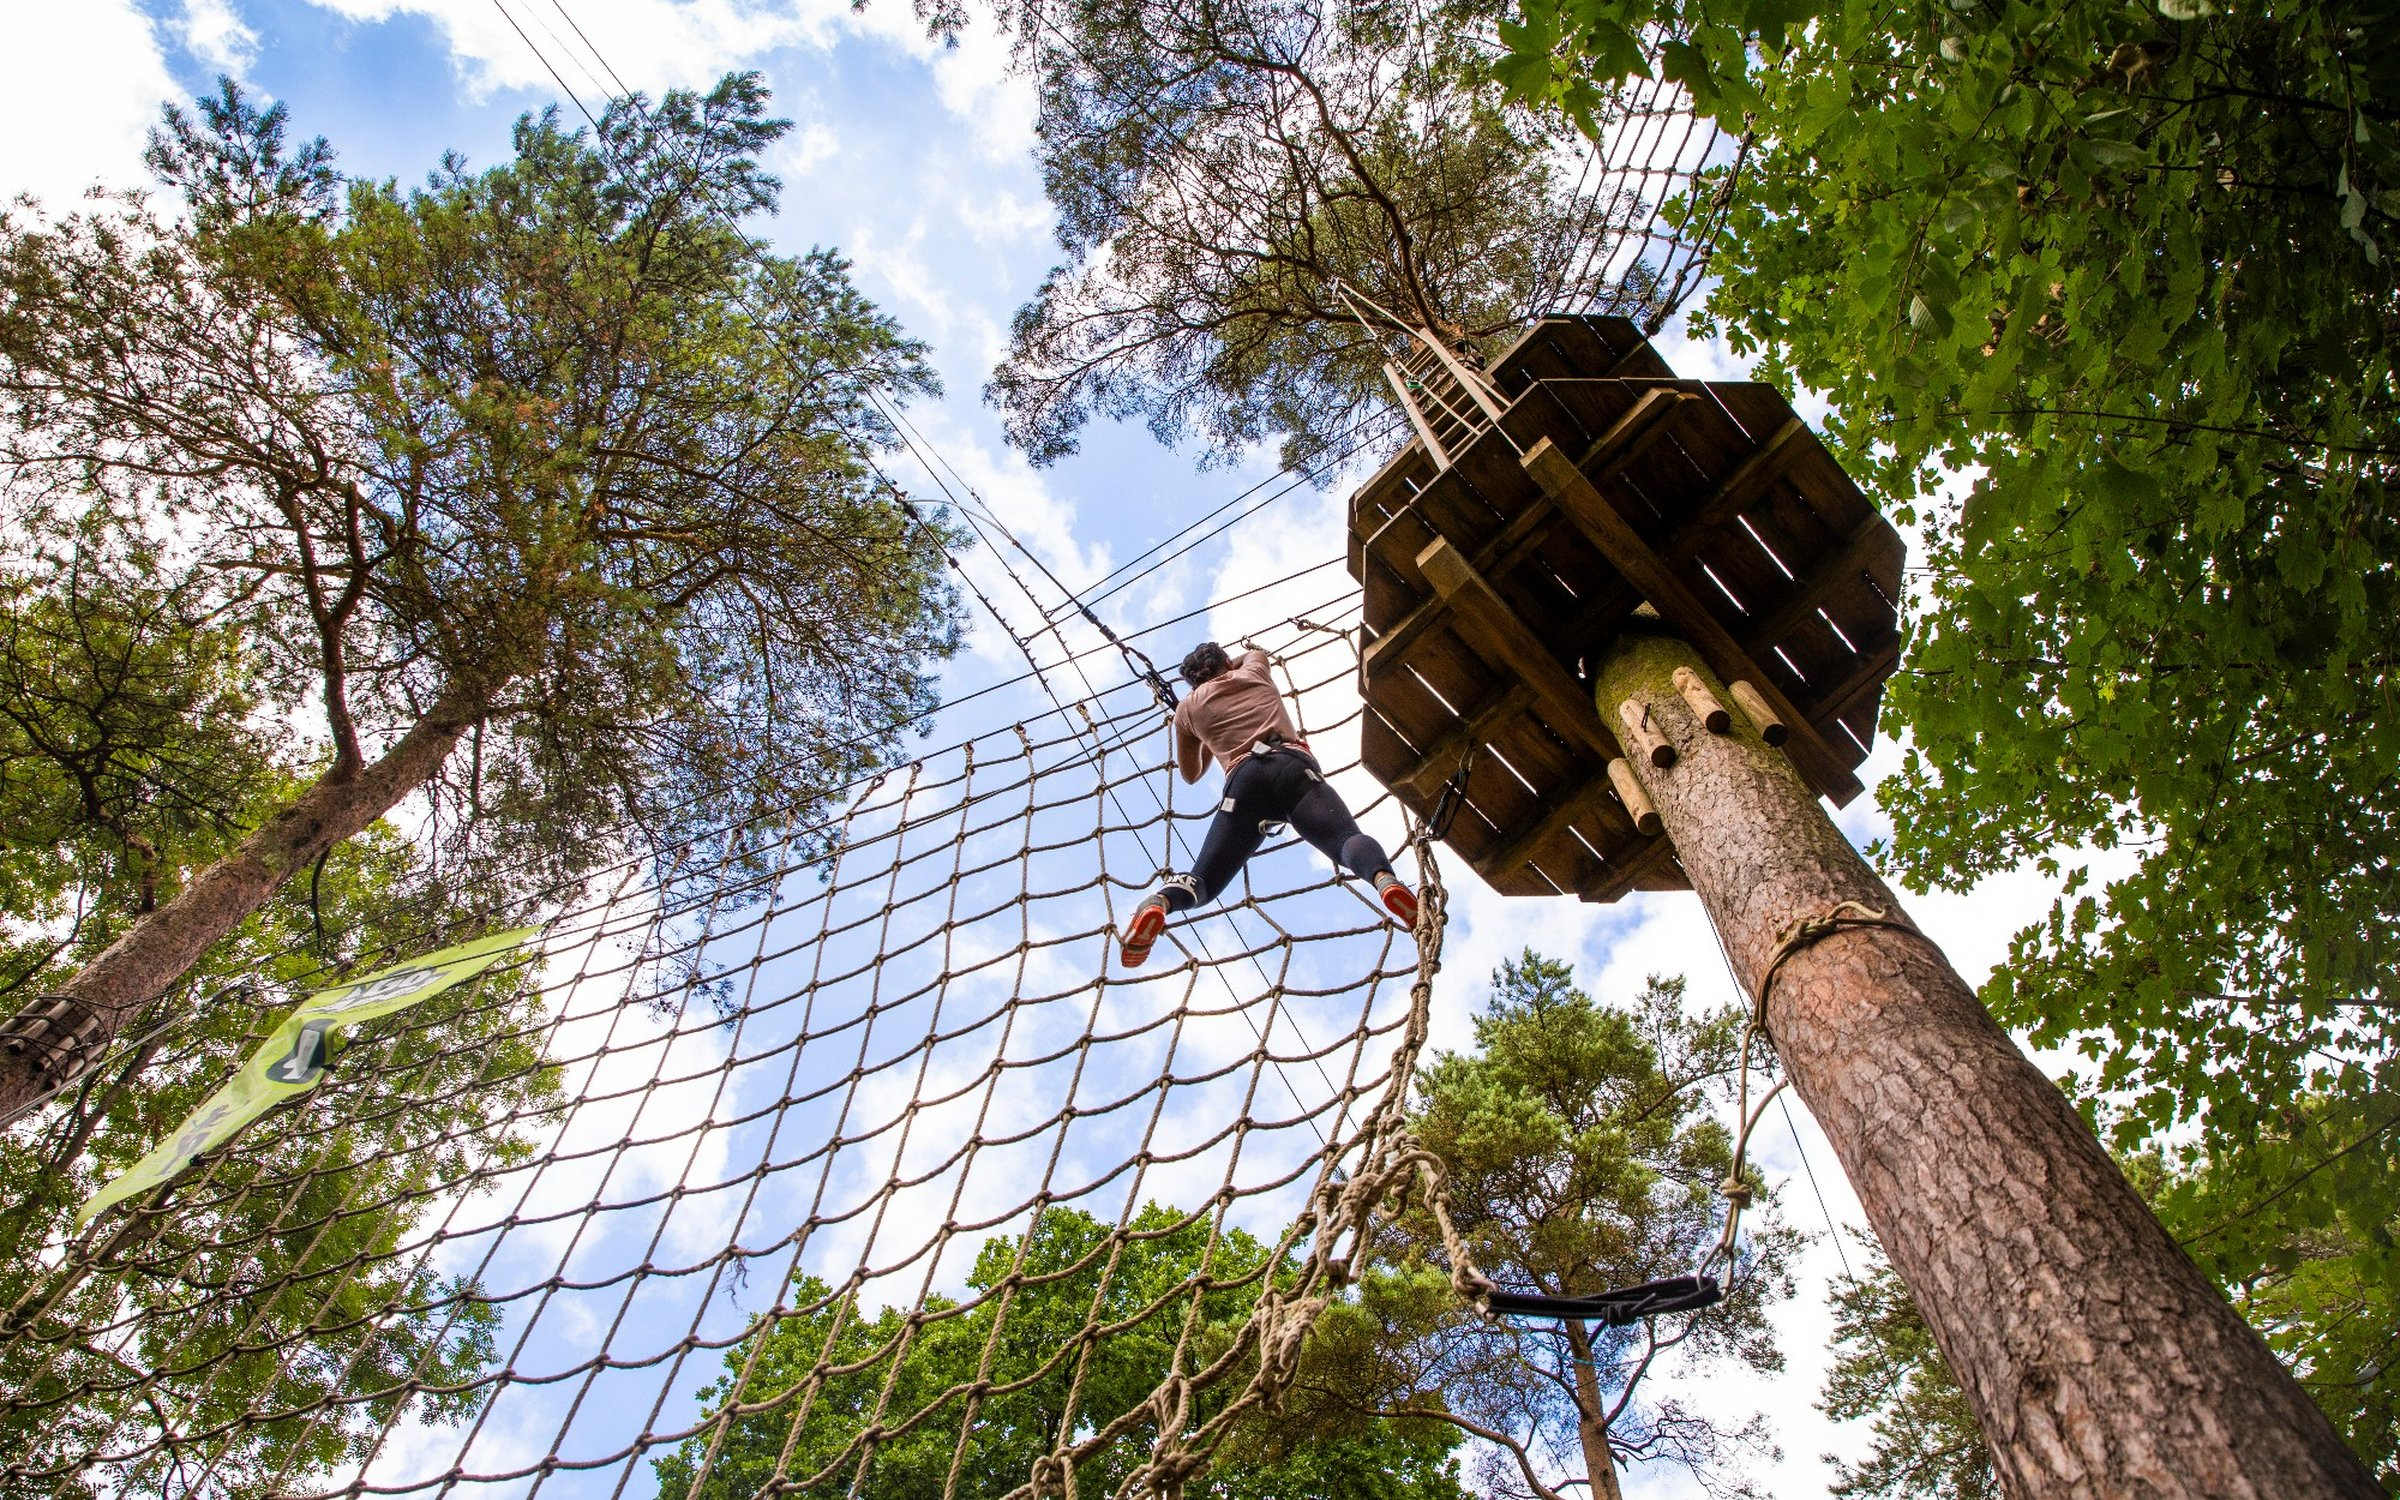 Go Ape Tree Top Challenge At Wendover Woods Forestry England